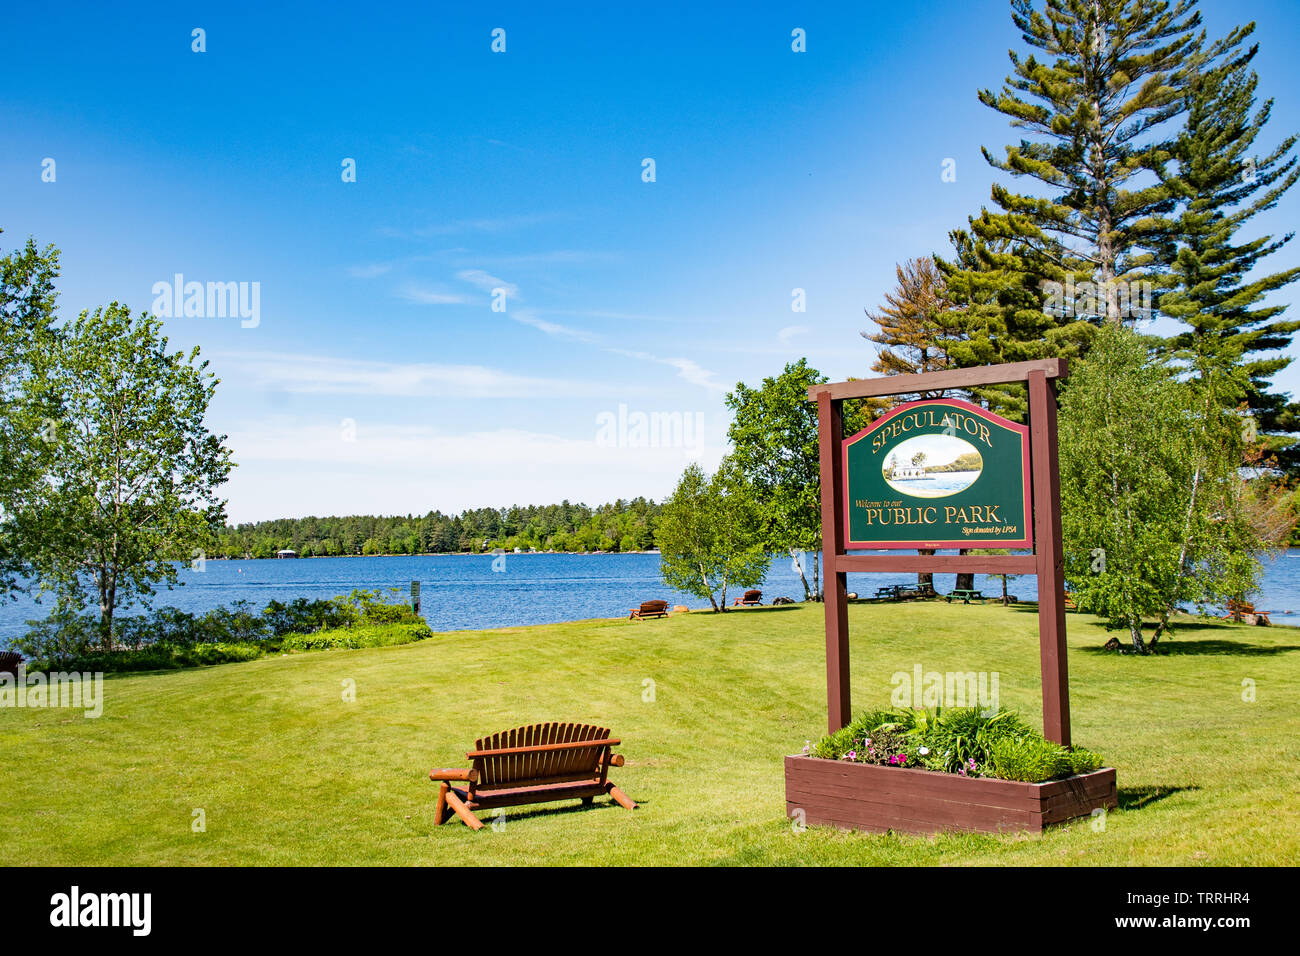 a-view-of-lake-pleasant-and-the-speculator-public-park-in-the-adirondack-mountains-ny-usa-TRRHR4.jpg